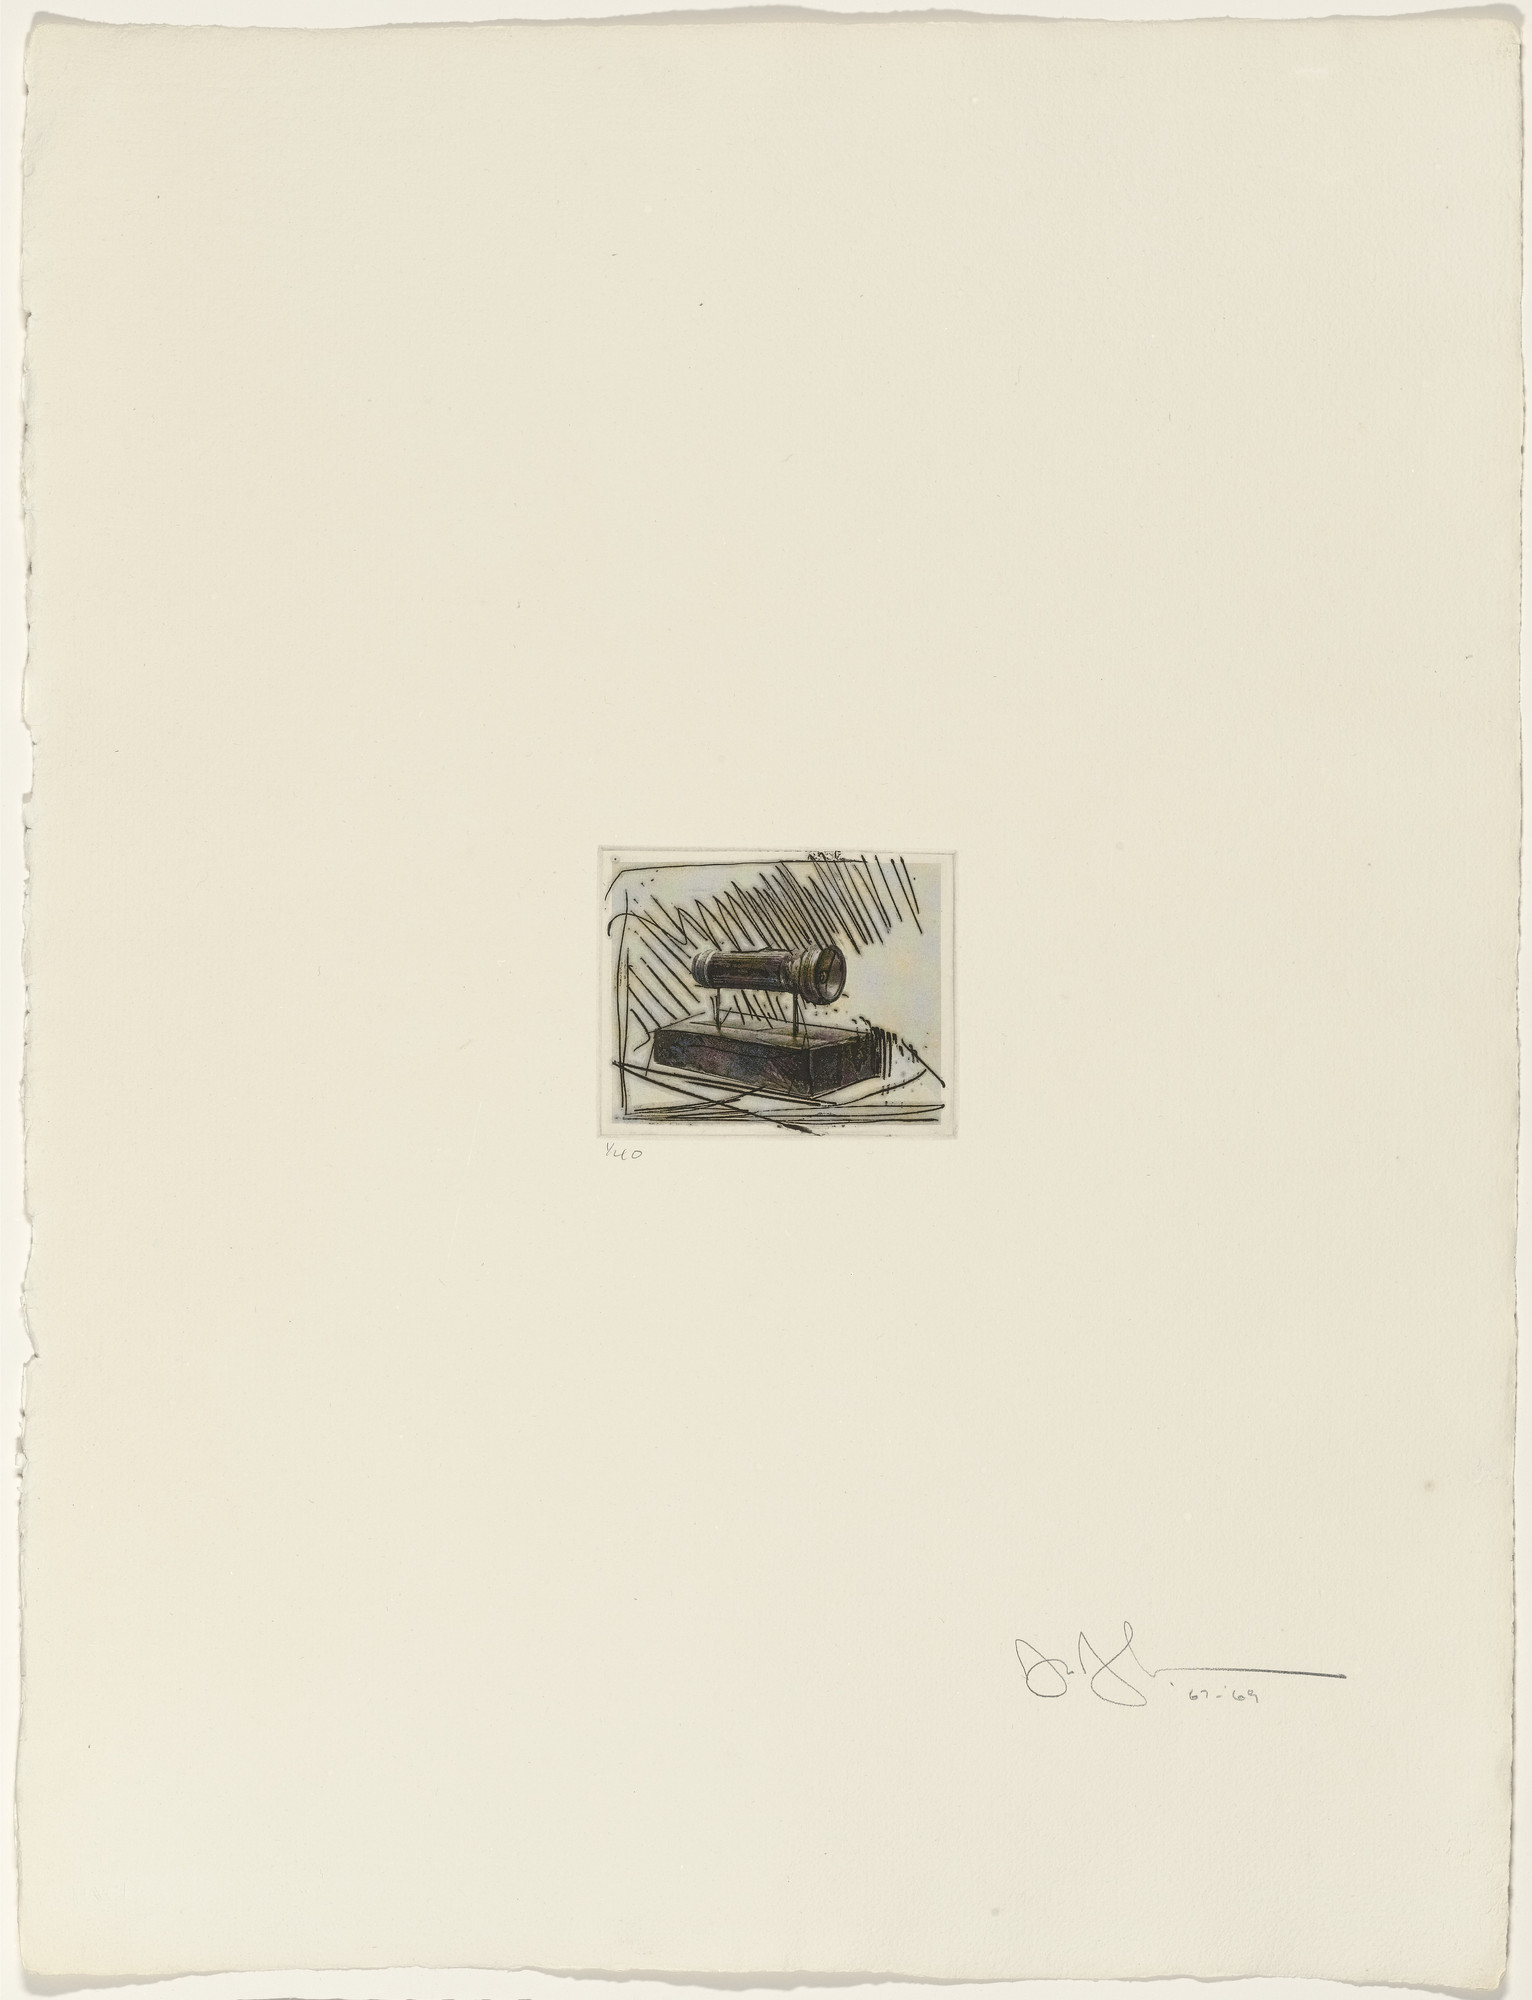 Jasper Johns. Flashlight I from 1st Etchings-2nd State. 1967–69, published 1969